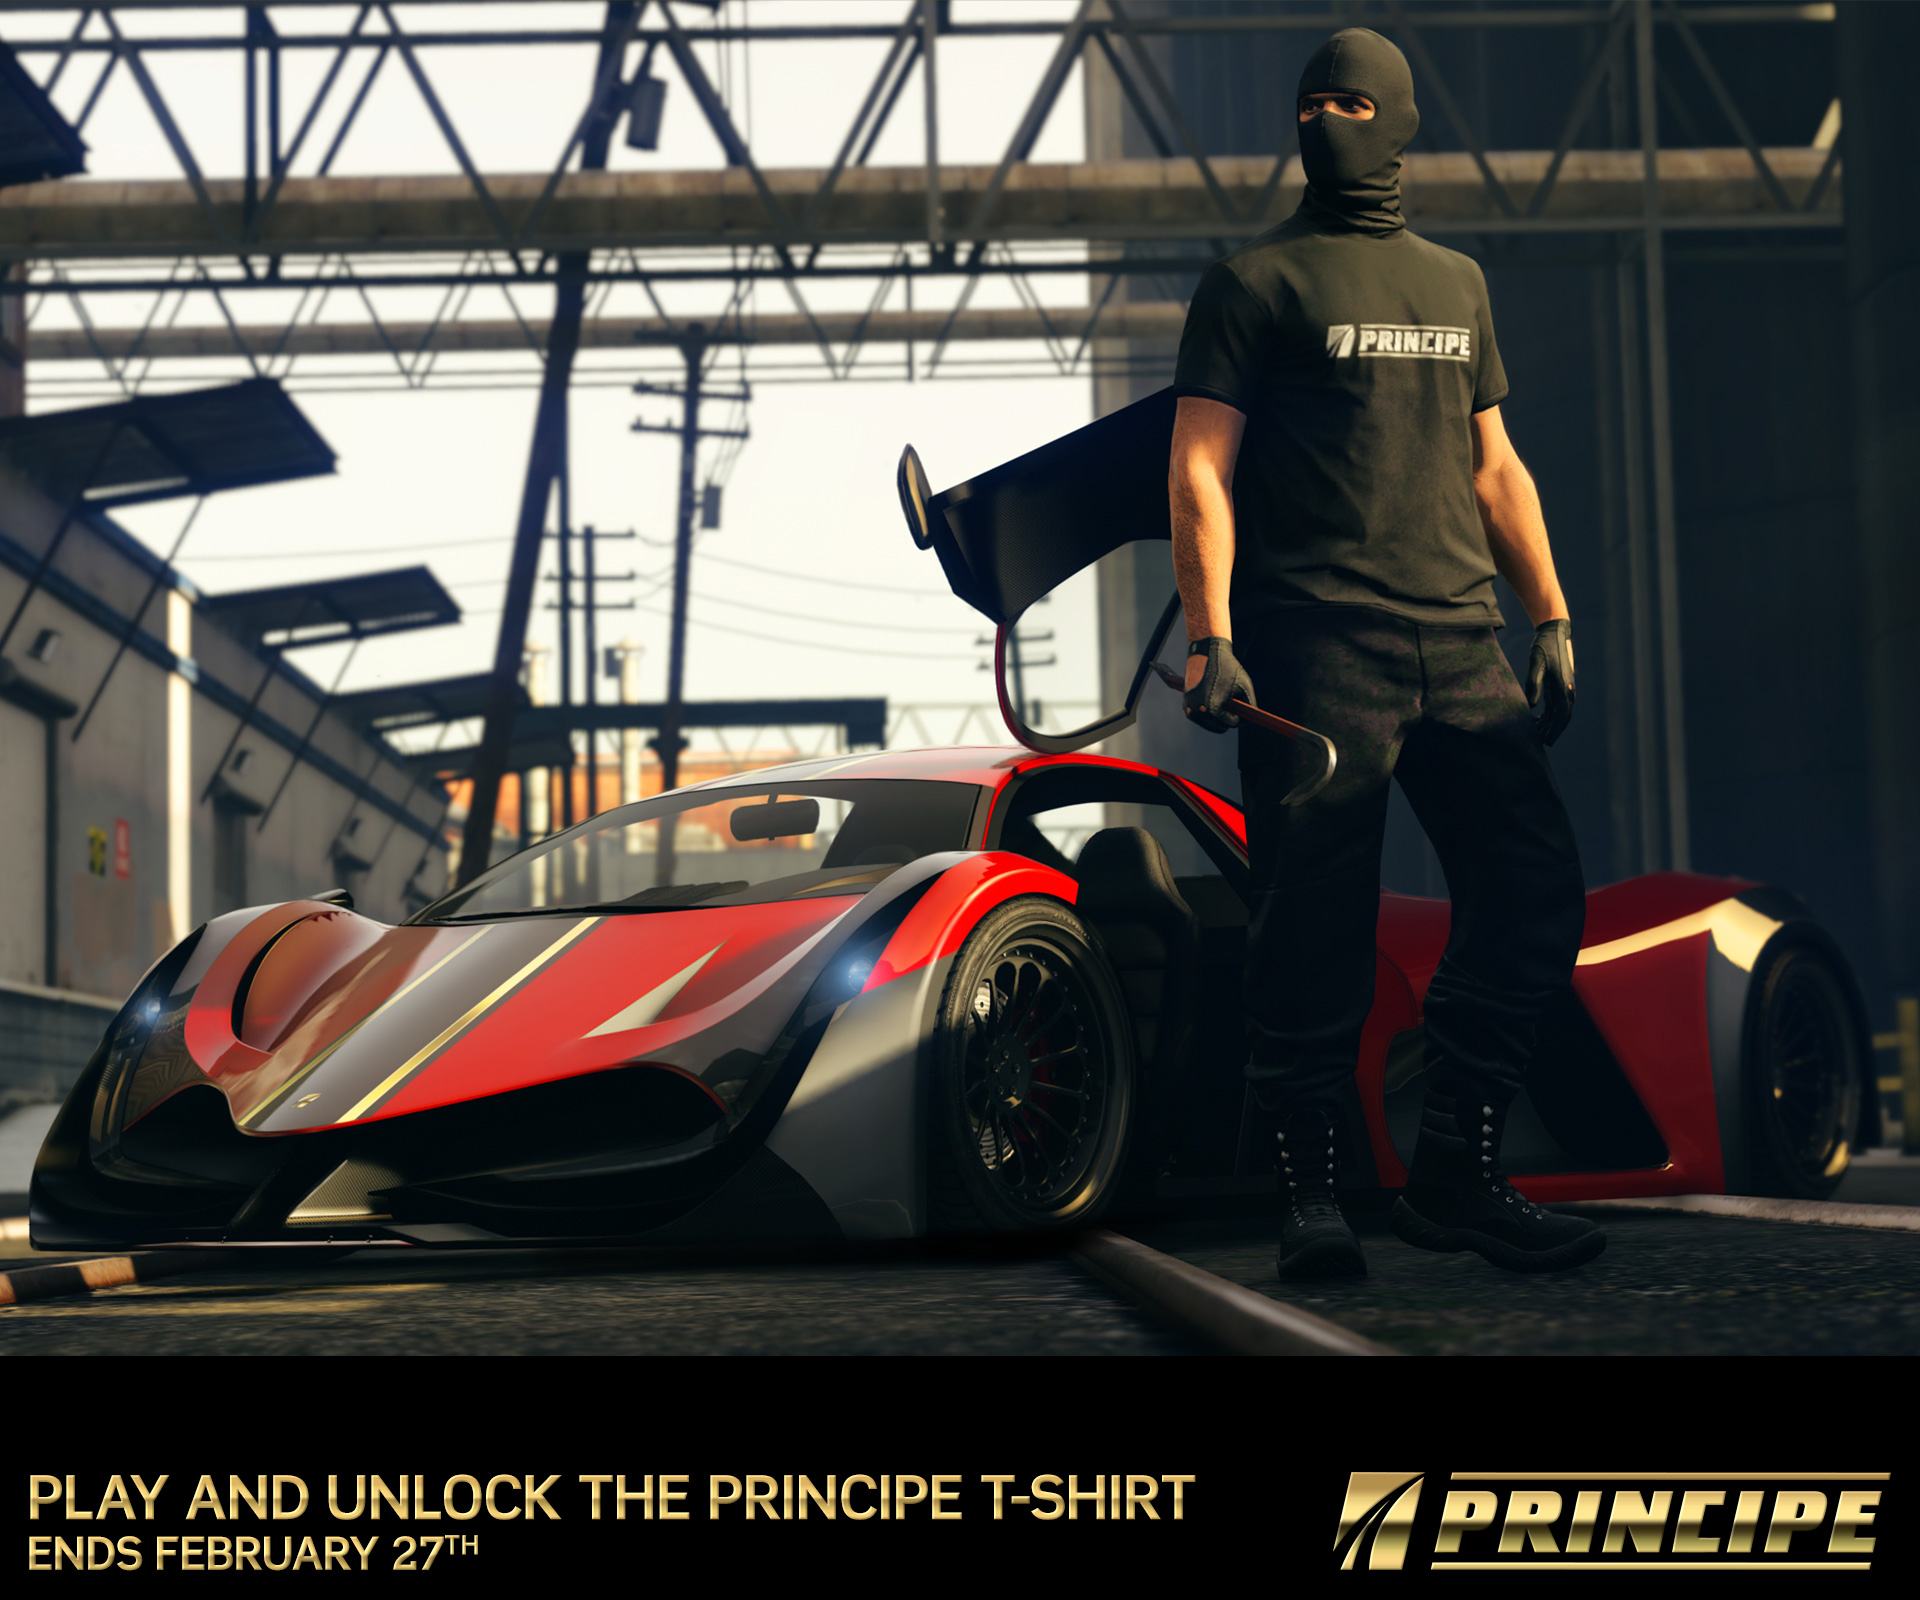 GTA Online: The Deveste Eight is now available - RockstarINTEL